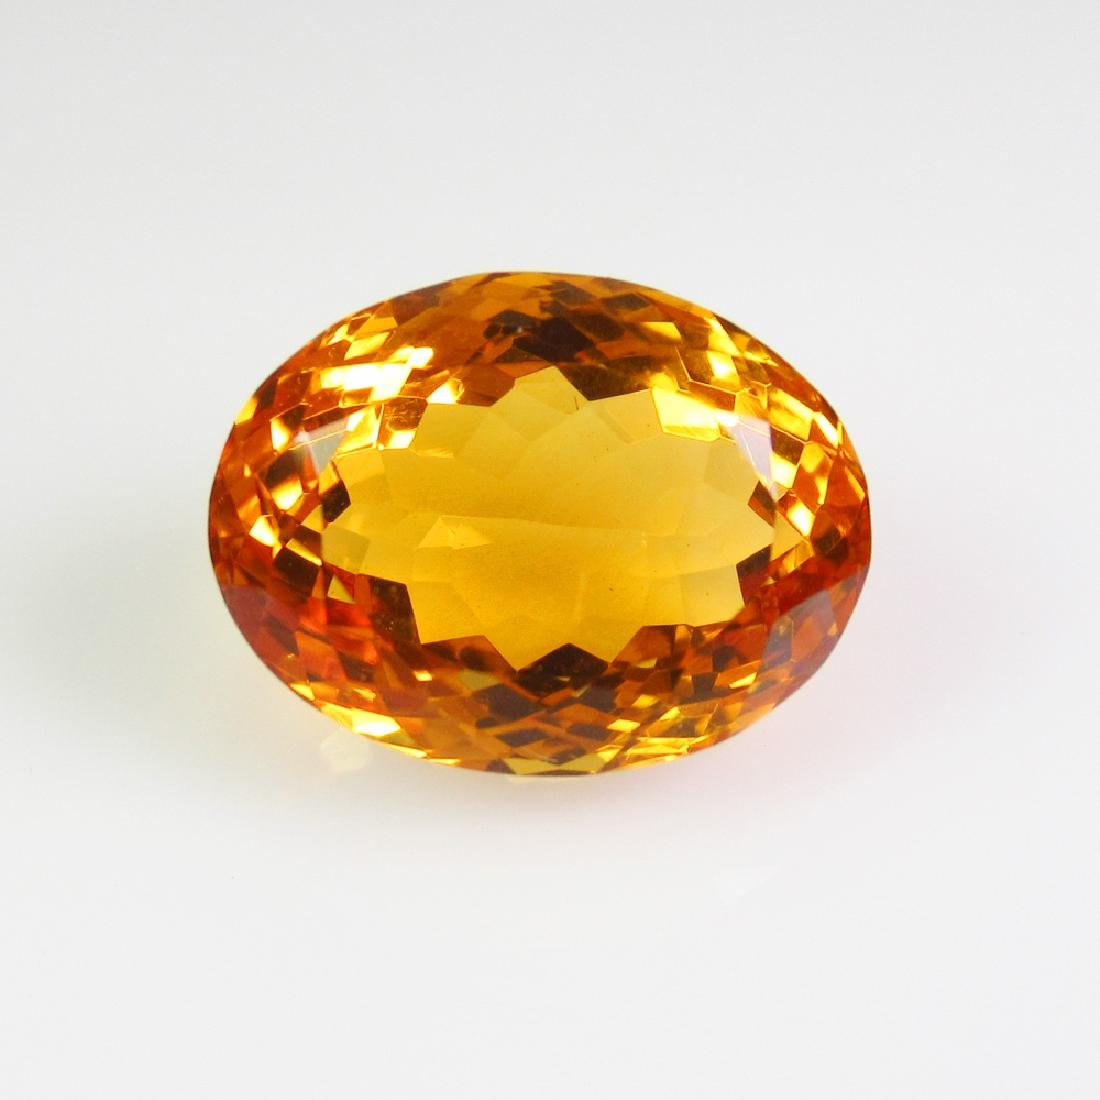 9.45 Ct Genuine Madeira Brandy Yellow Citrine Oval Cut